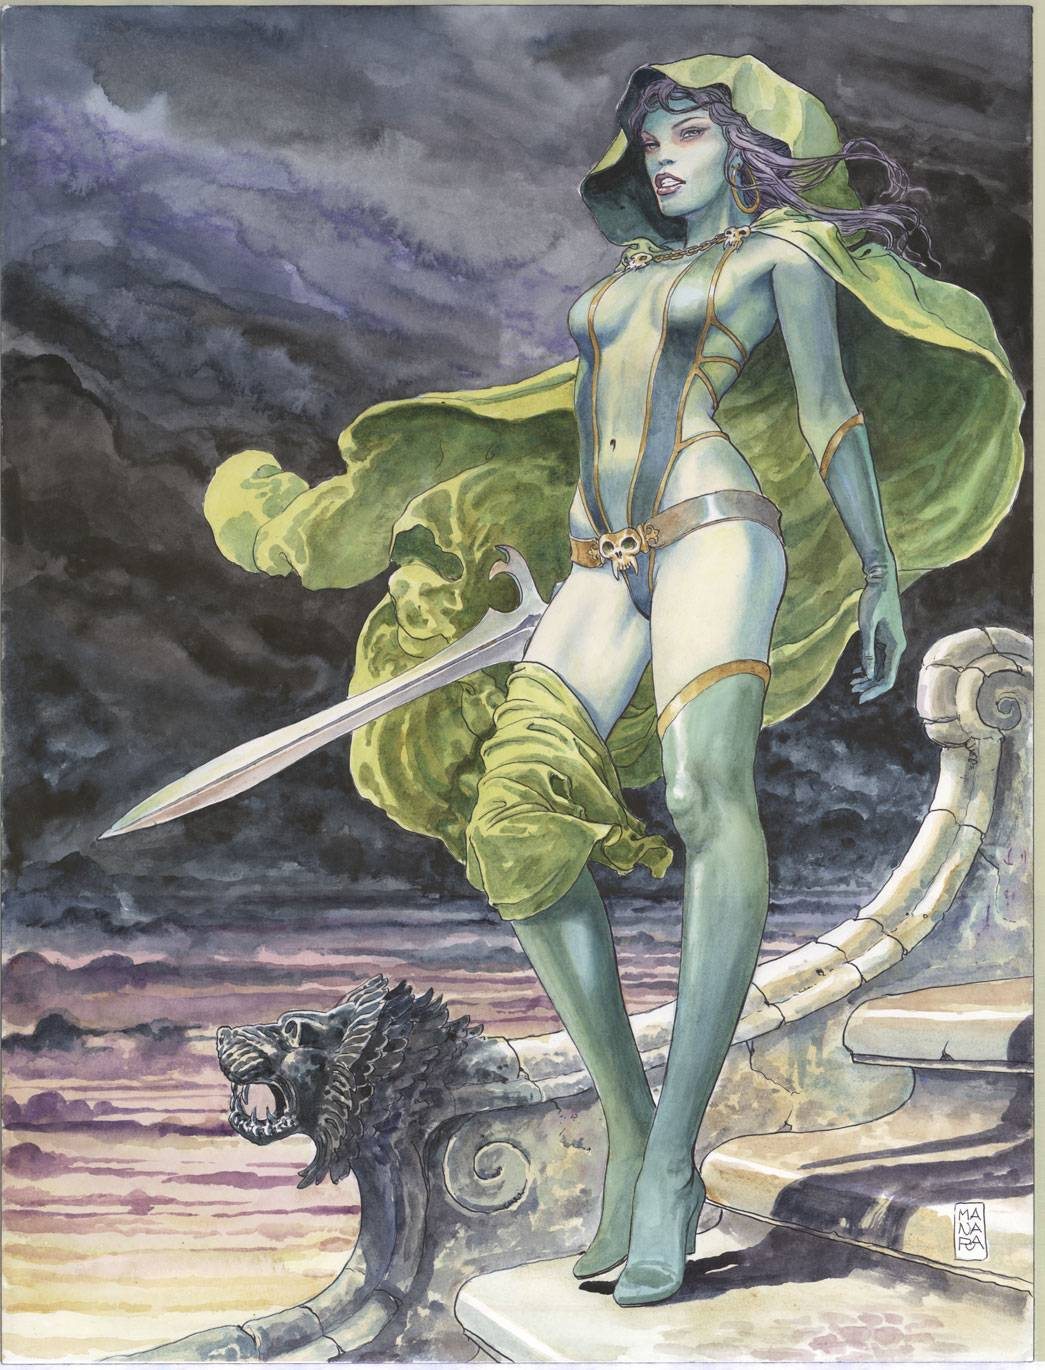 Marvel Guardians of the Galaxy Gamora Milo Manara Poster